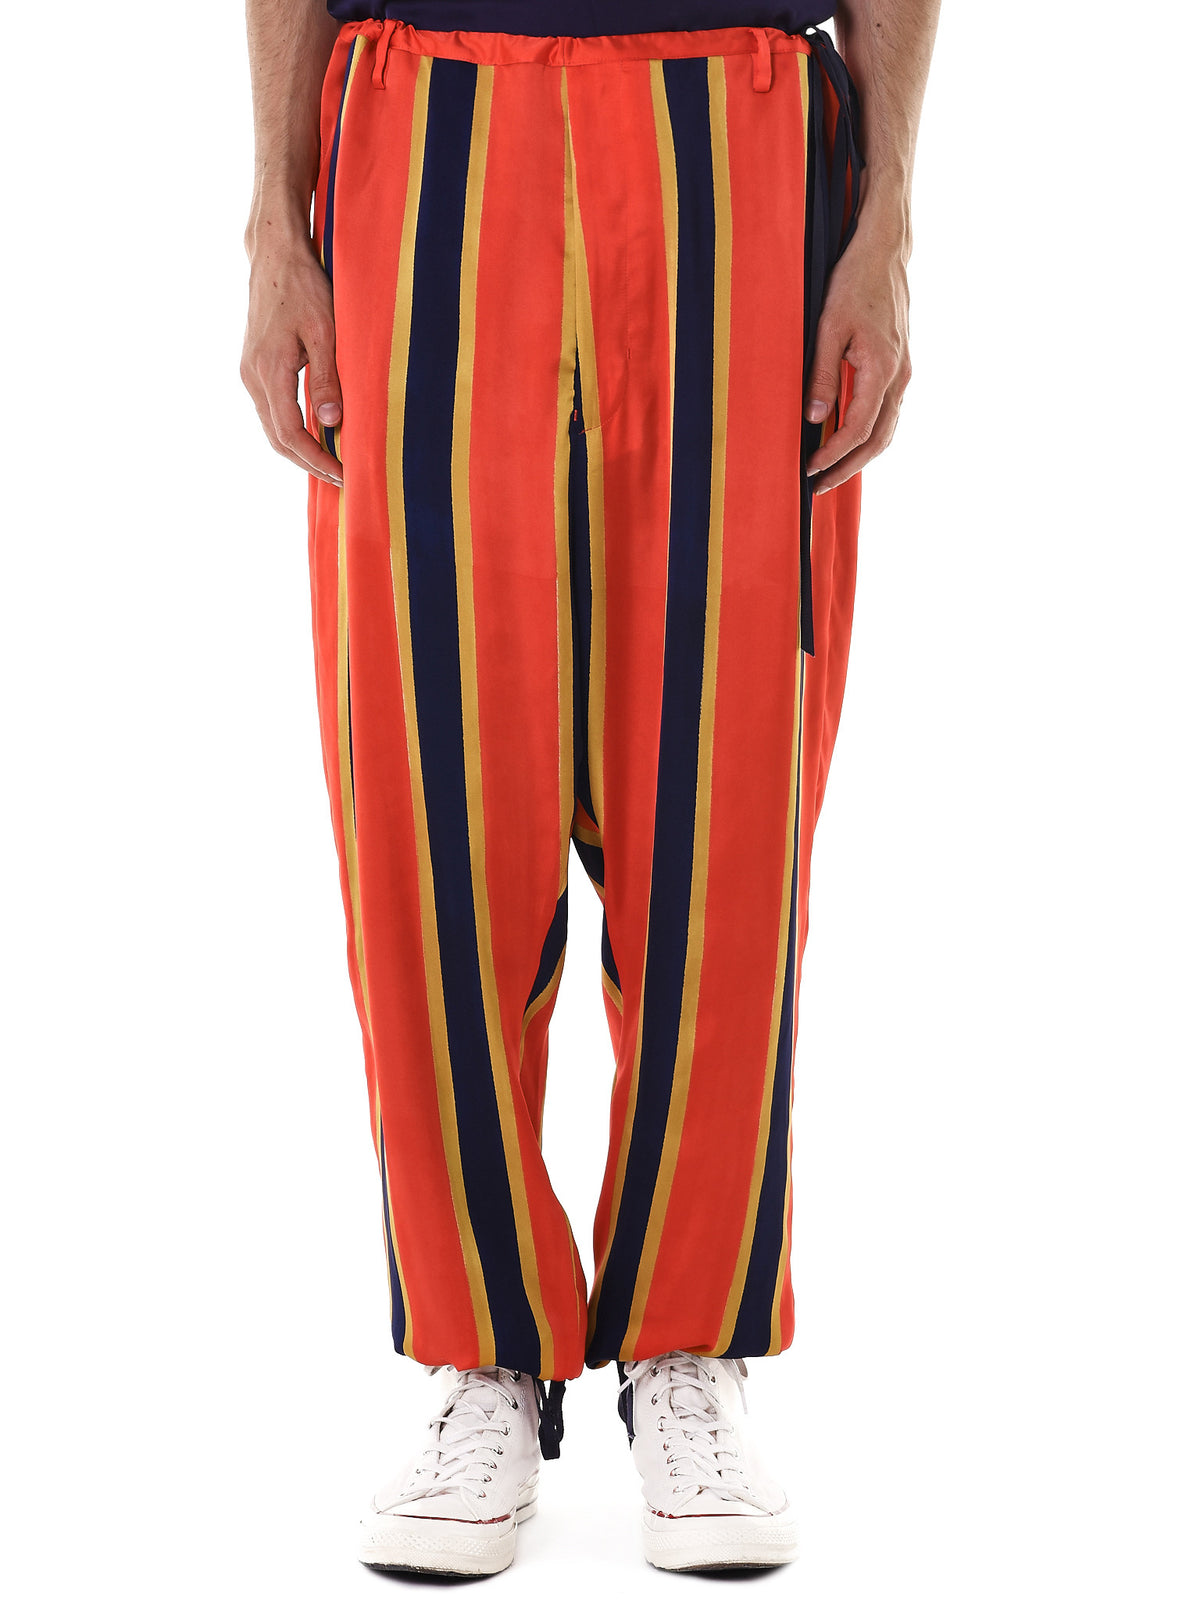 Relaxed Striped Trouser (17SSB-PT03-RED) - H. Lorenzo